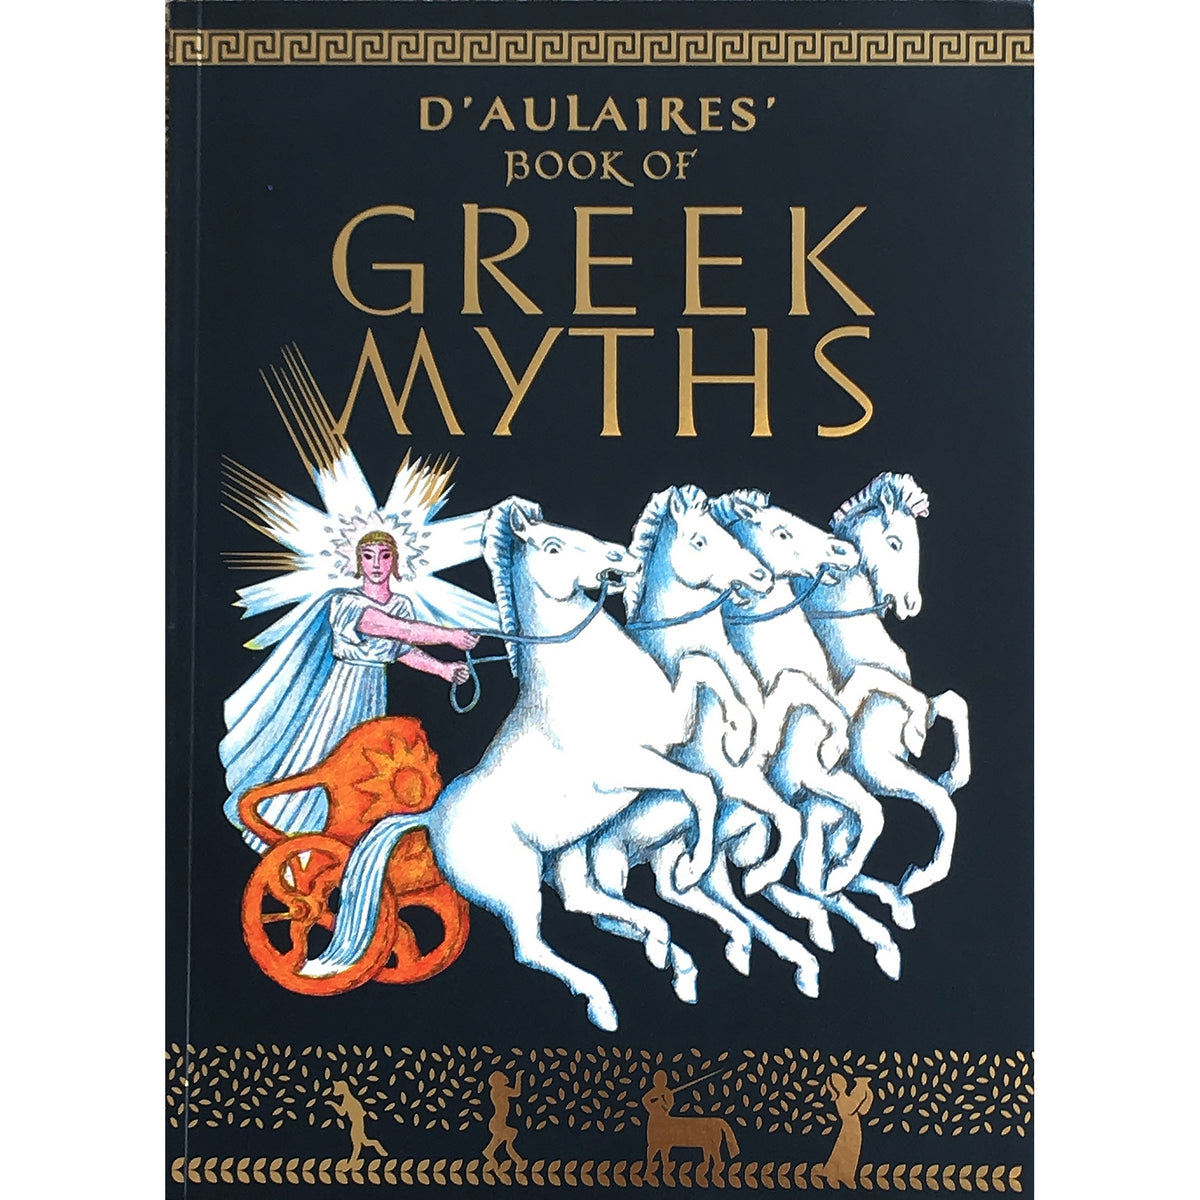 D'Aulaires; Book of Greek Myths - New Edition | Getty Store